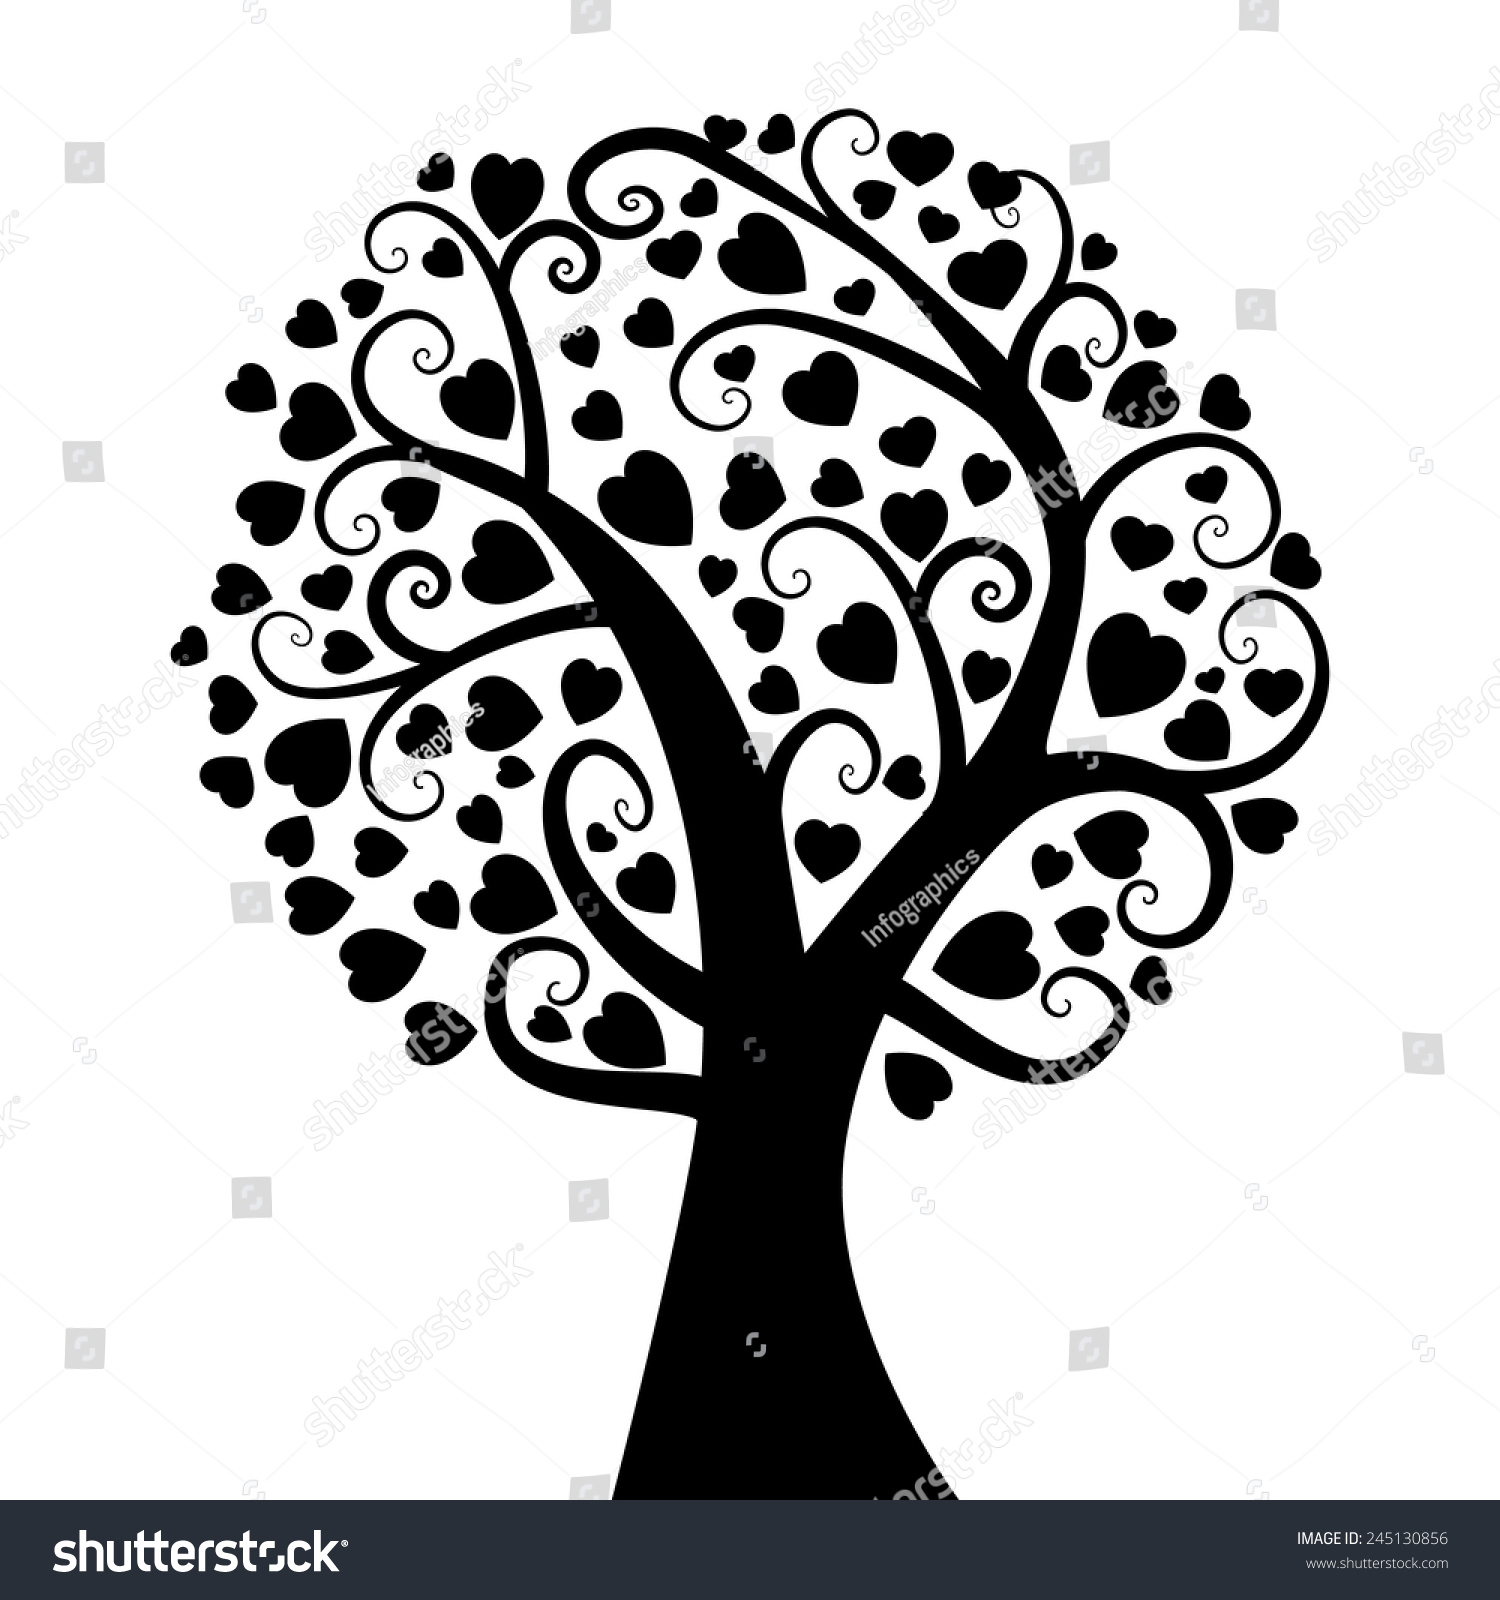 Valentines Day Tree Heart Card Love Stock Vector 245130856 ...